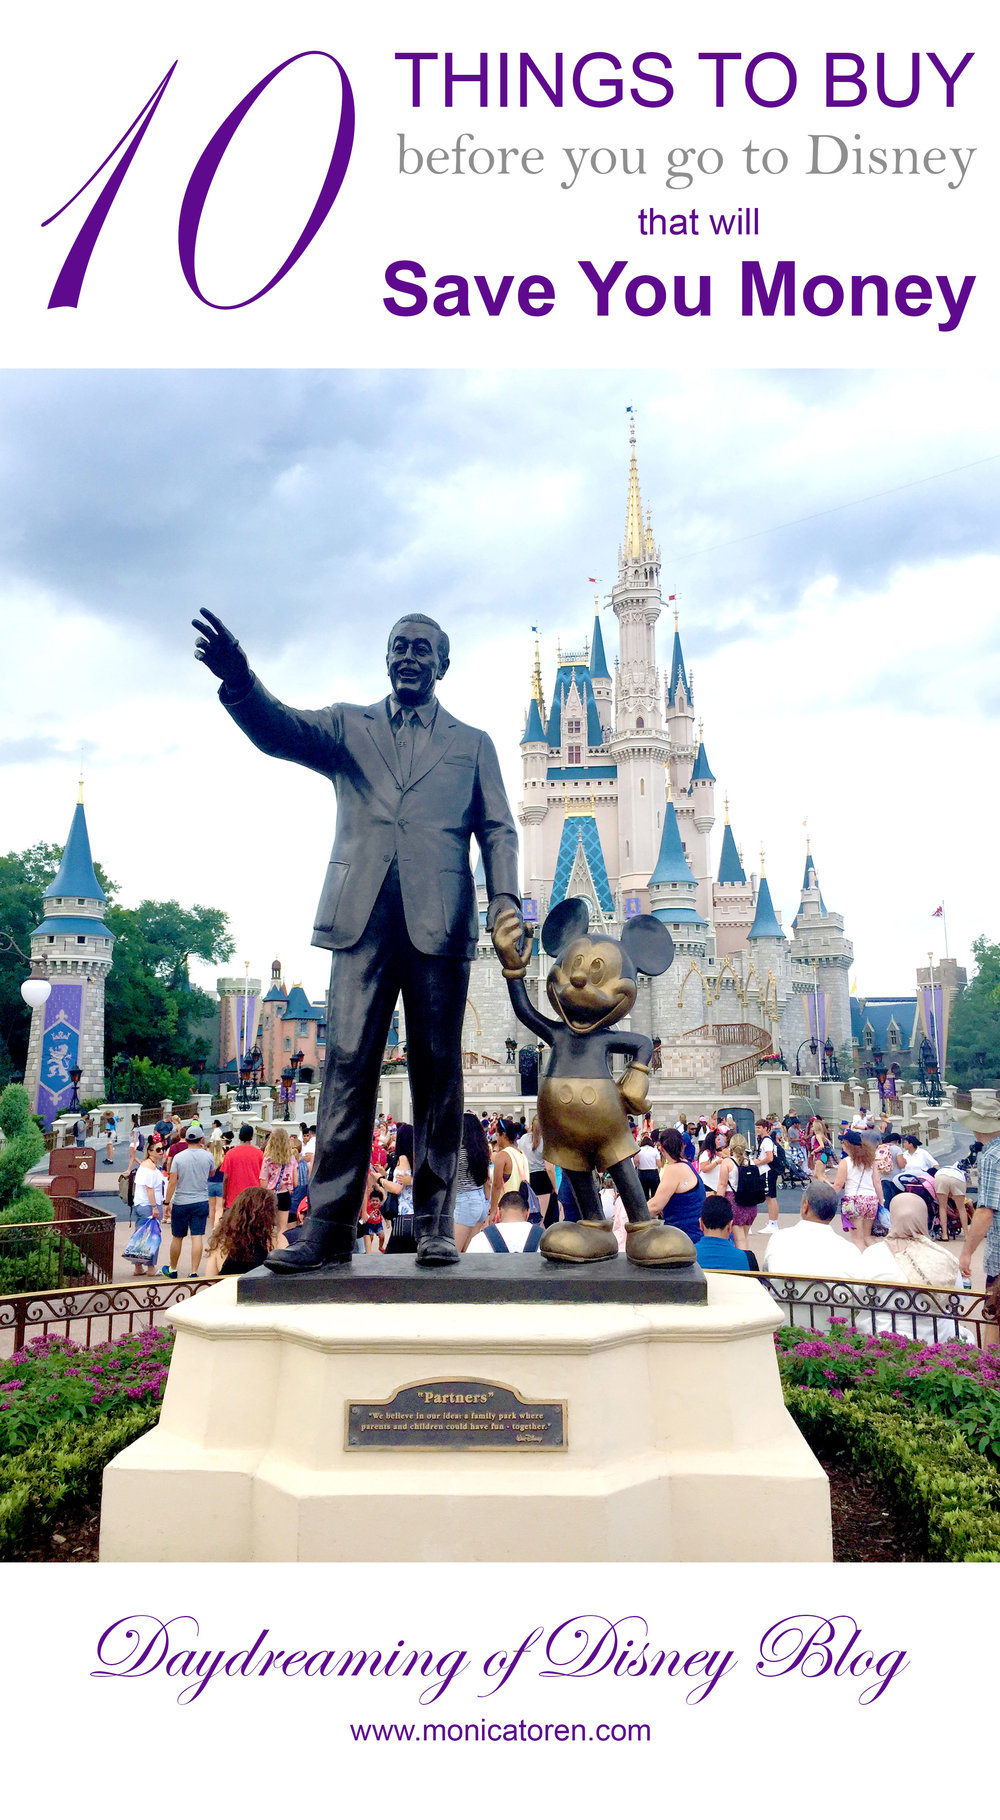 Daydreaming of Disney Blog - Ten Things to Buy Before You Go to Disney That Will Save You Money - http://www.monicatoren.com